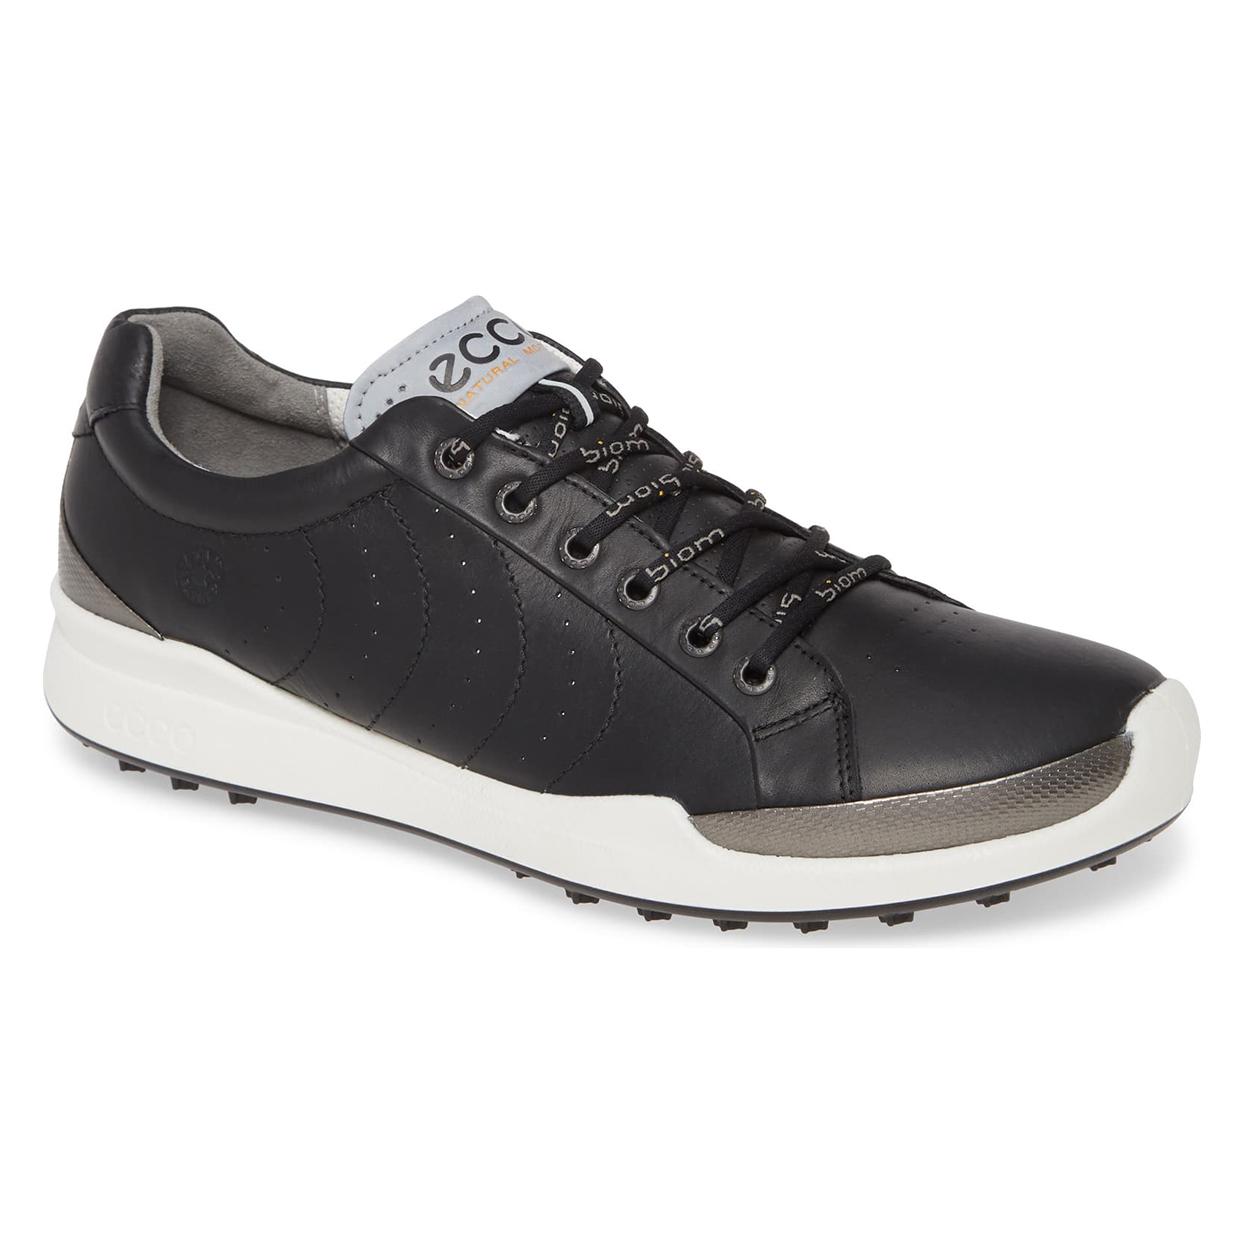 'Biom Hybrid' Golf Shoe